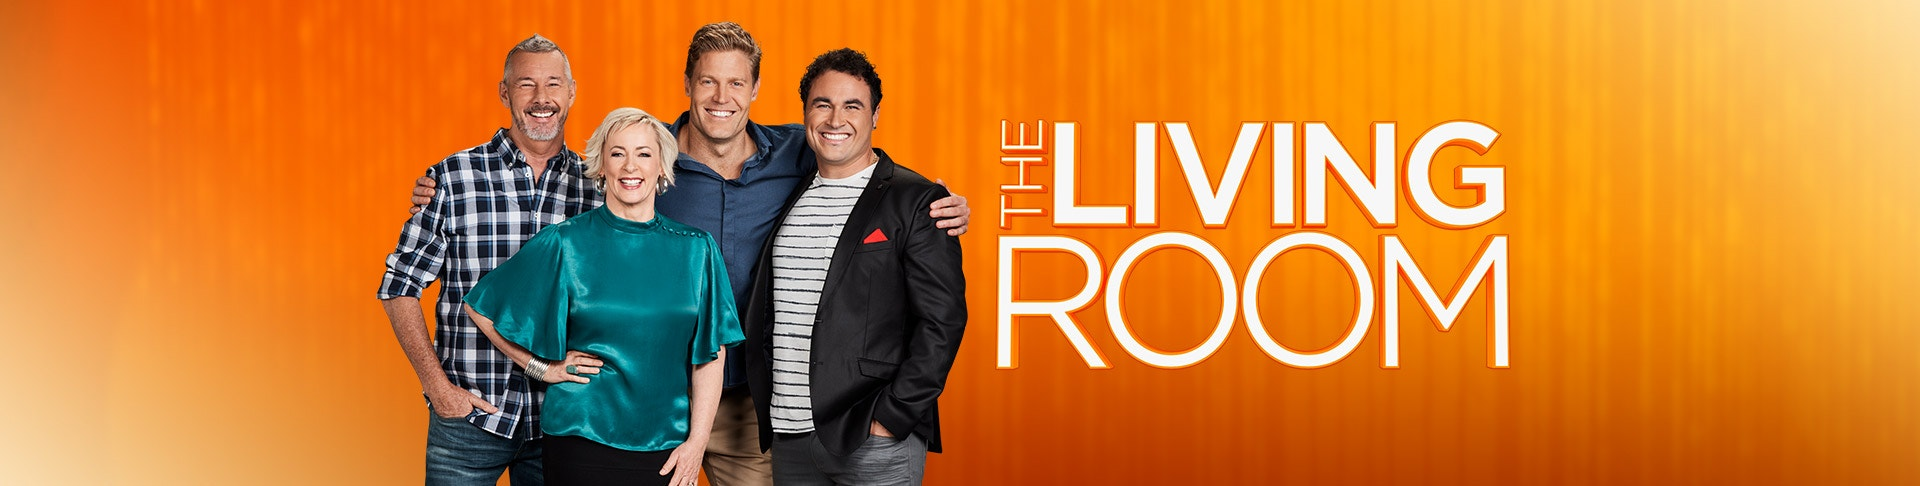 The Living Room - Network Ten